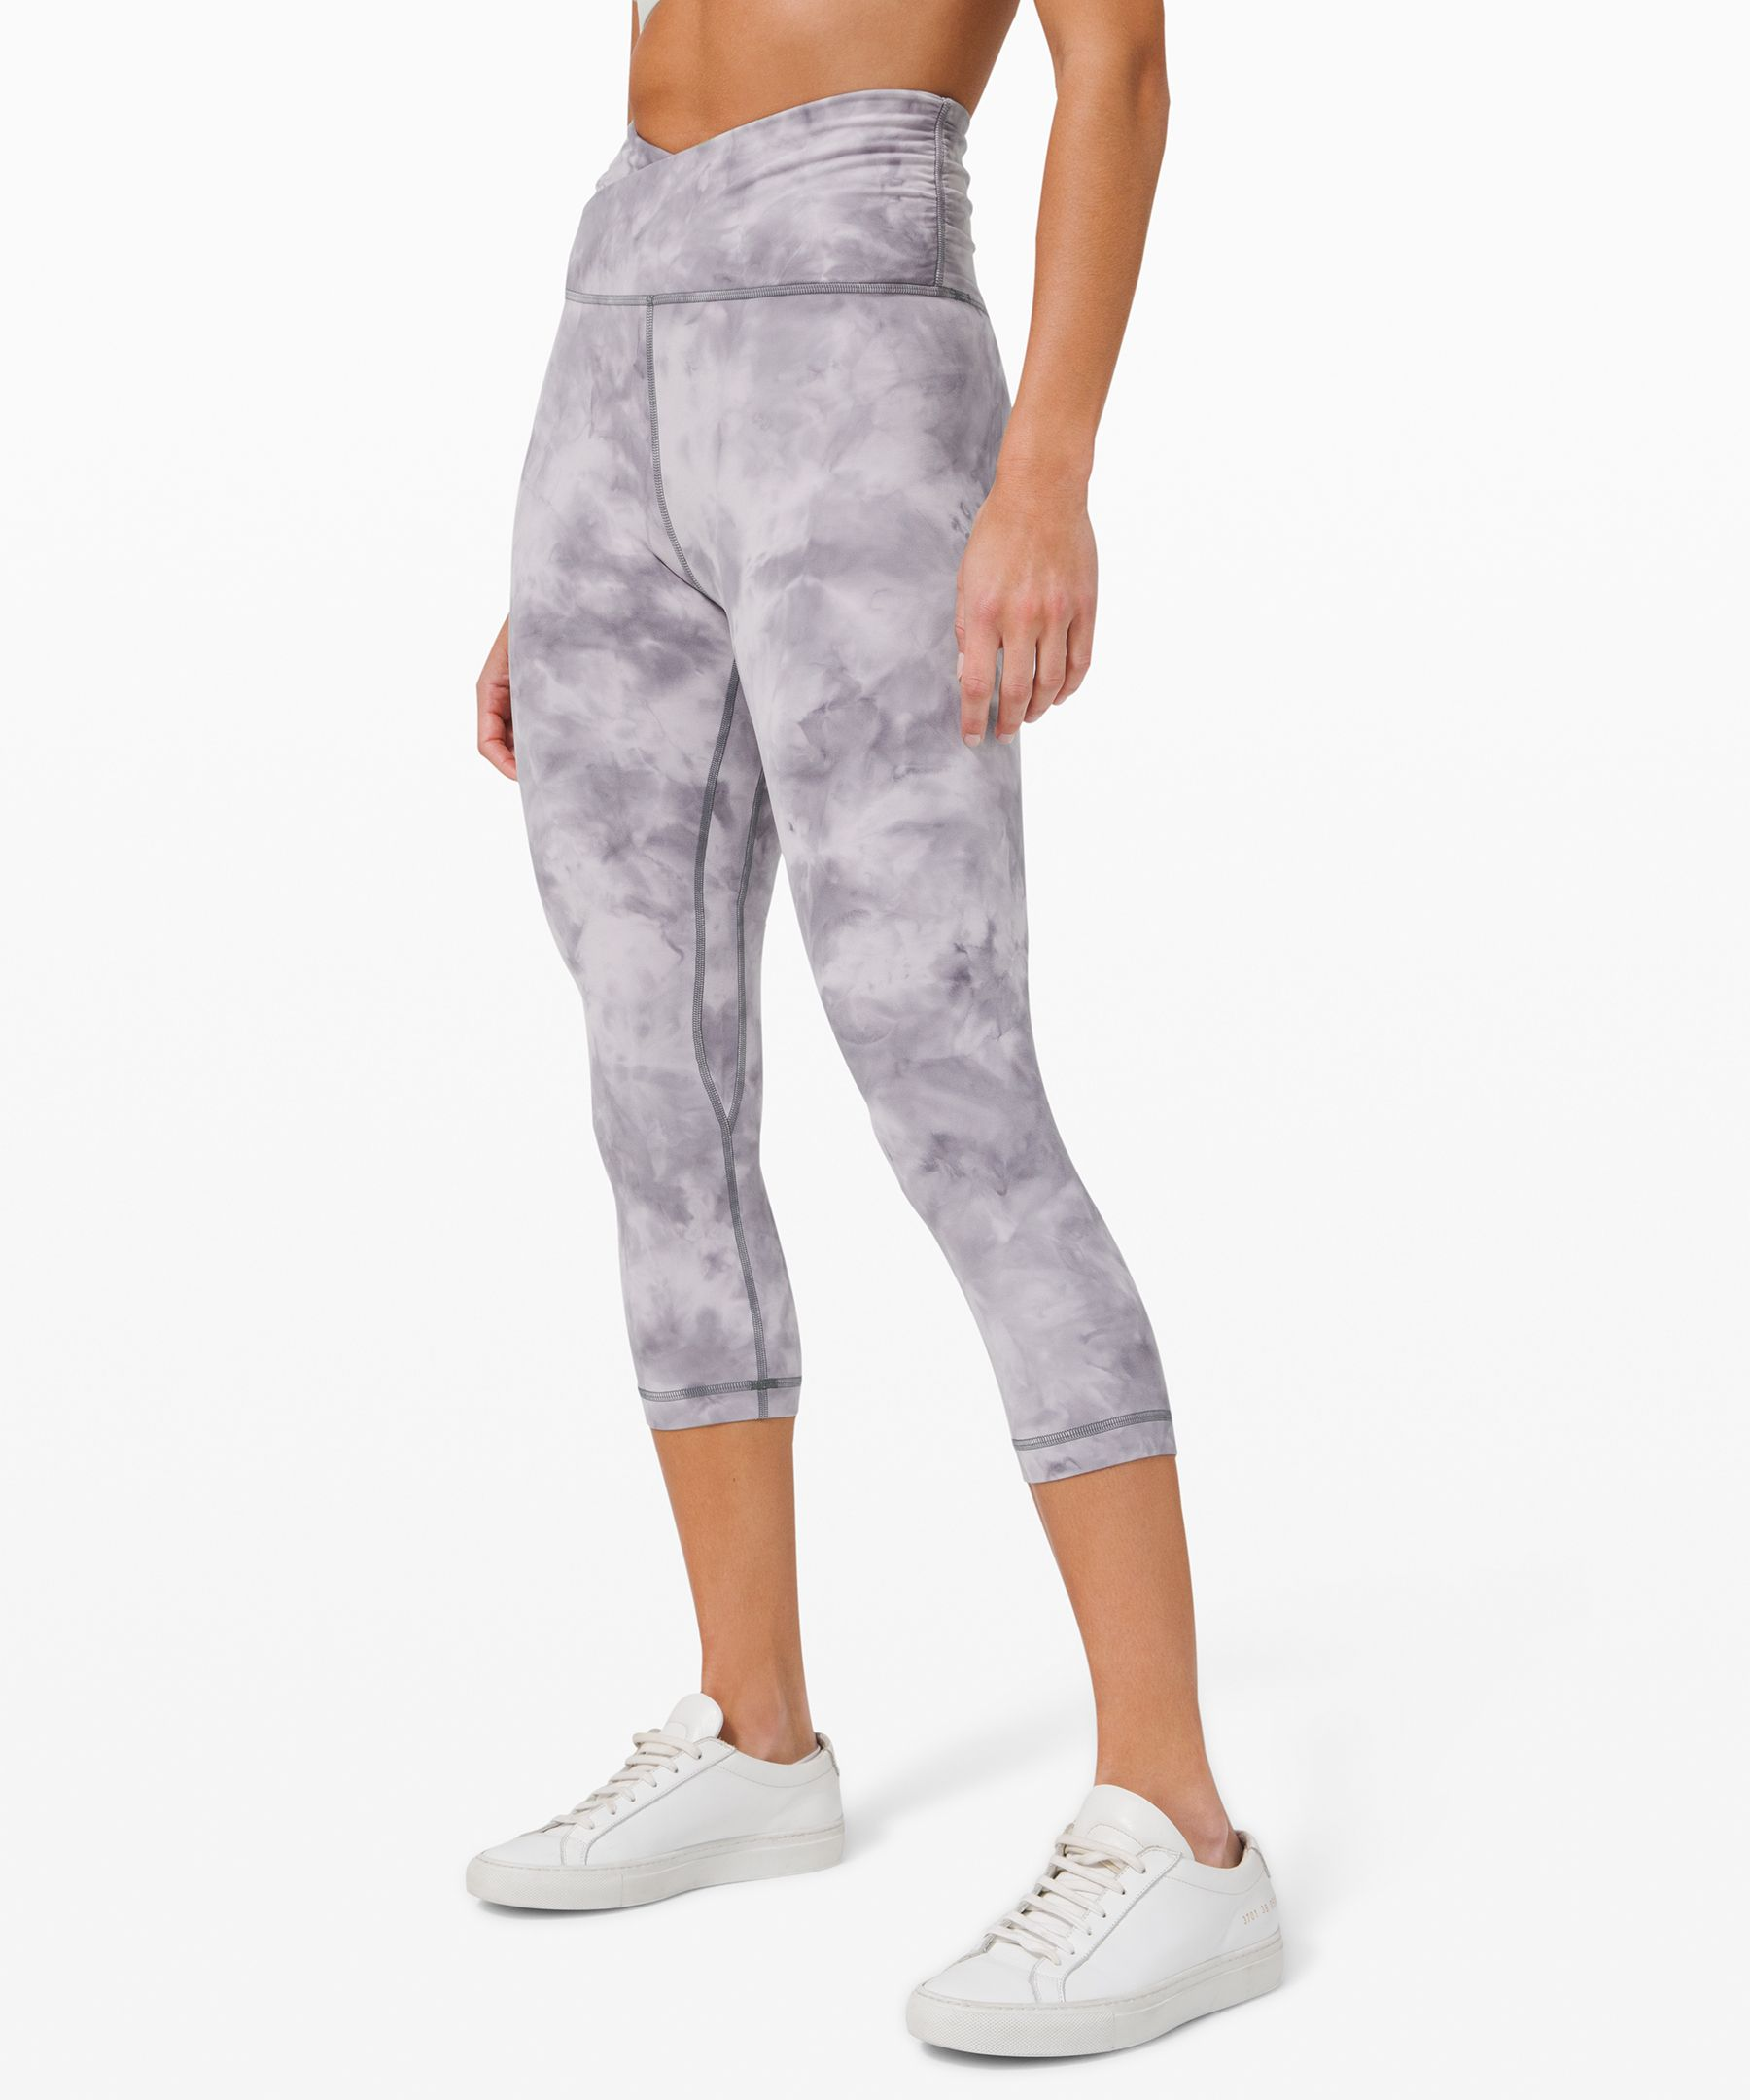 SPECIAL EDITION: A gracefully  gathered and crossed waist  lends feminine flair to our  classic yoga crops, designed  to minimize distractions and  maximize comfort as you flow  through your practice.